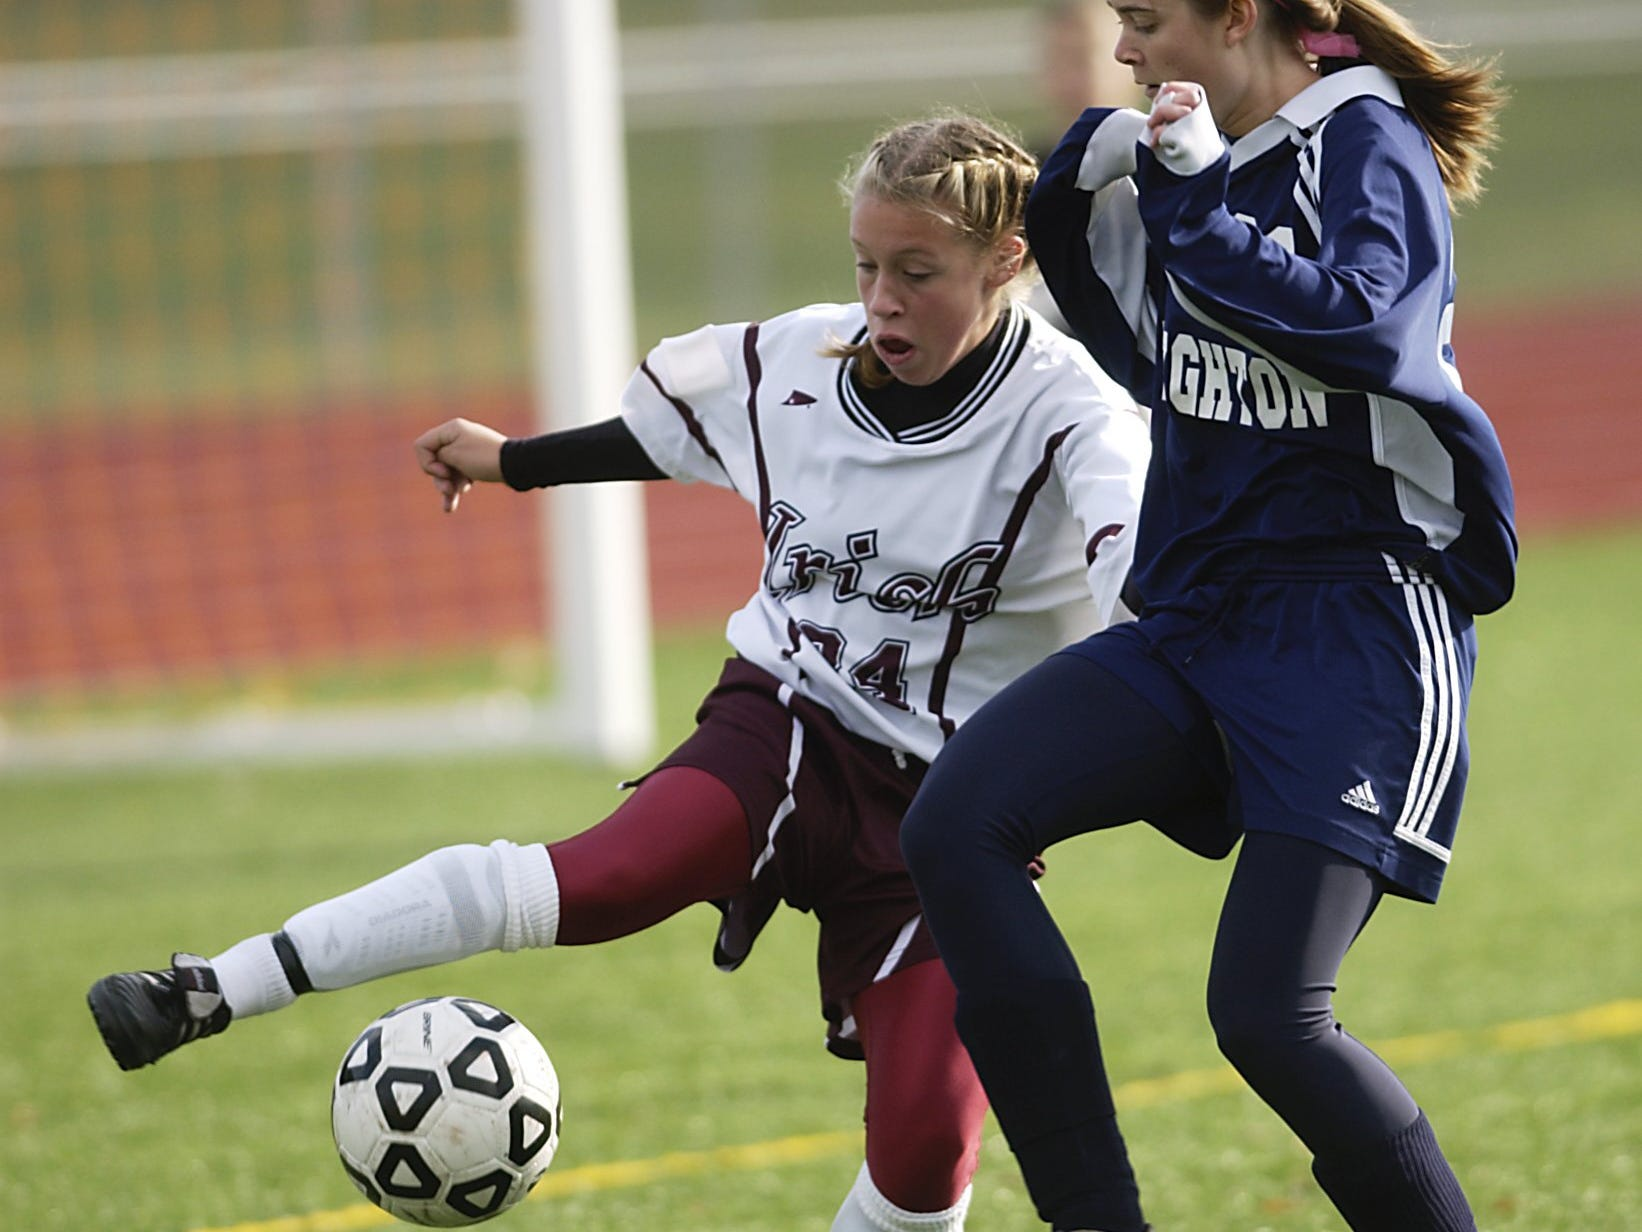 Ashley Hughes of Aquinas keeps the ball away from Brighton's Grace Conley during the second half of Aquinas' 4-0 victory on Oct. 29, 2005.